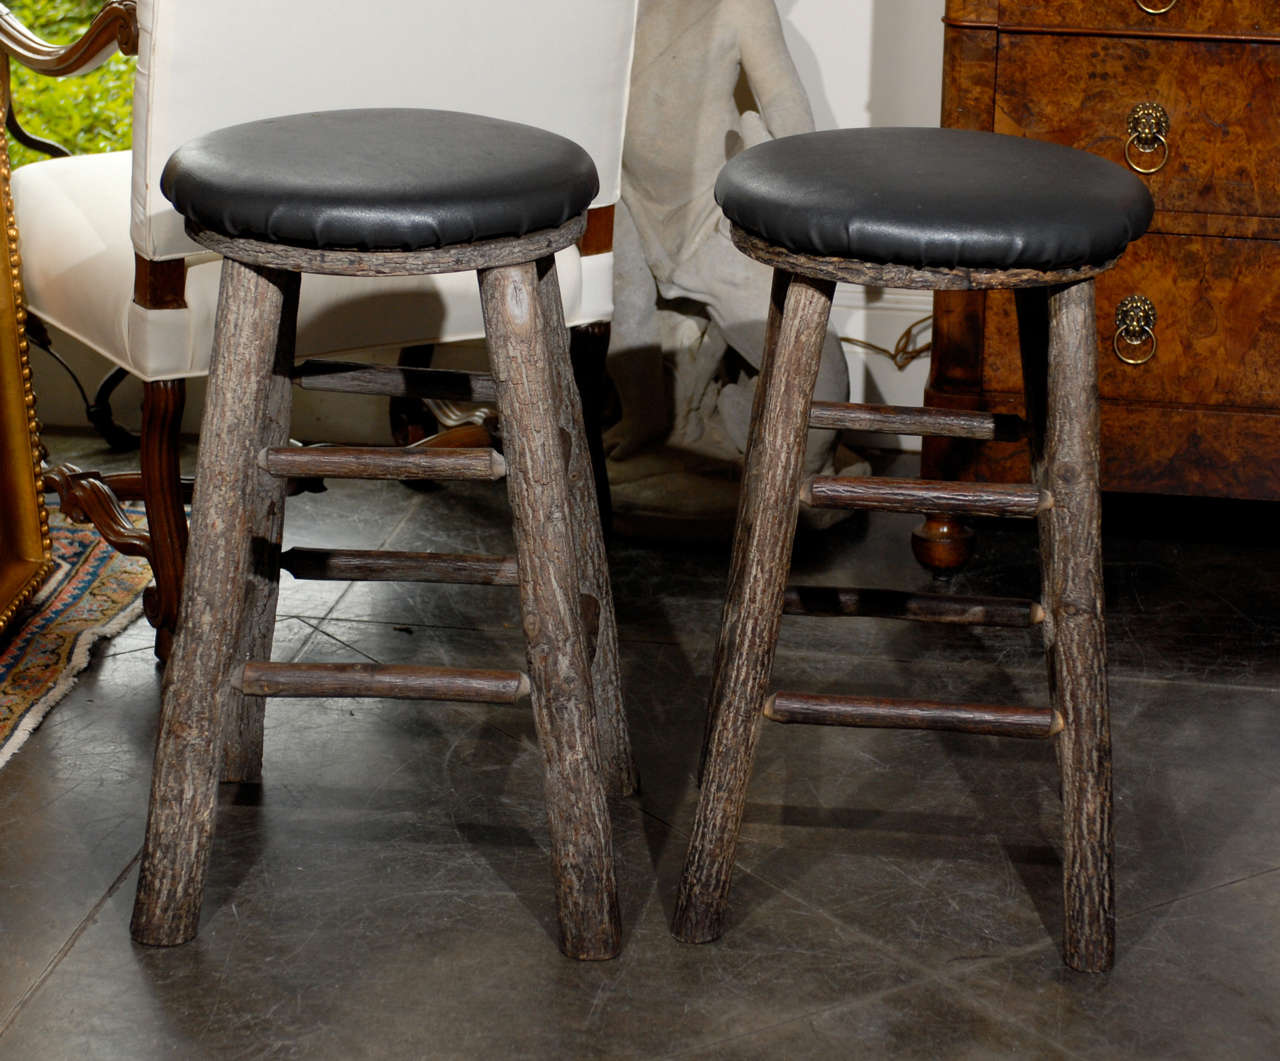 12 Round Vintage Bar Stools 2 : antique bar stools wood - islam-shia.org